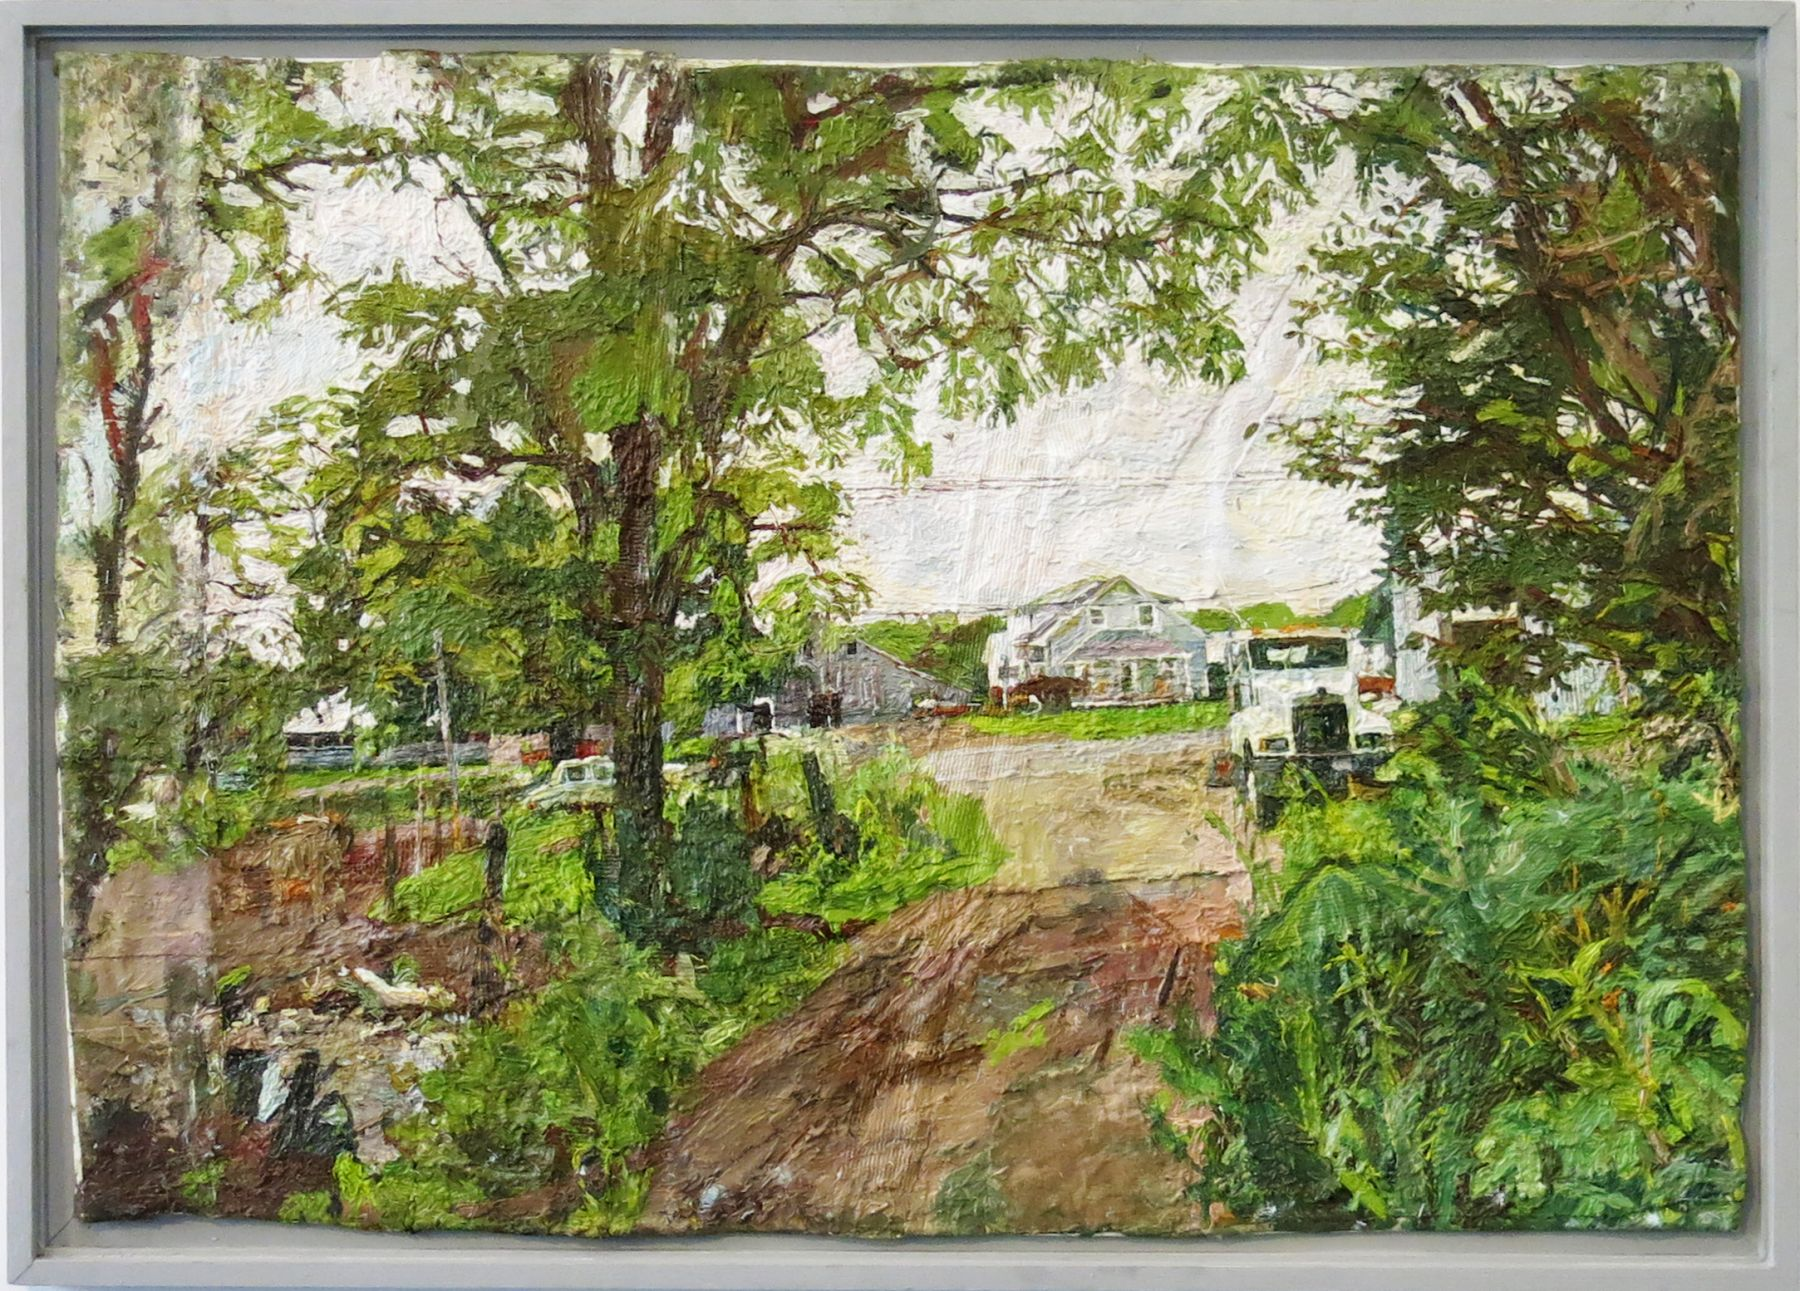 Matt Farnham's Farm with Truck, 2014, Oil on Canvas